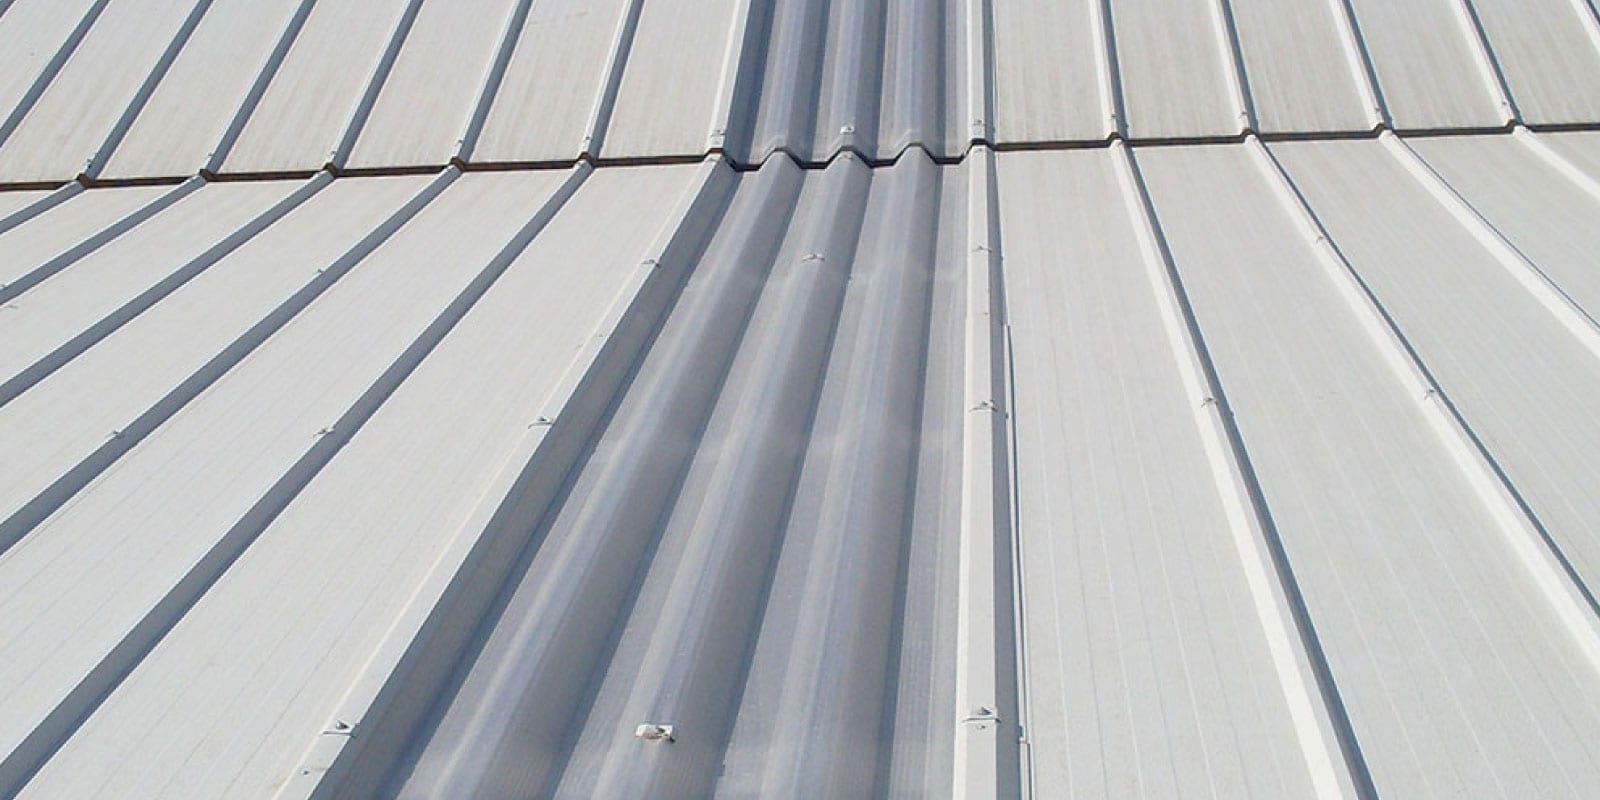 Commercial Clear Panel Roofing Sydney